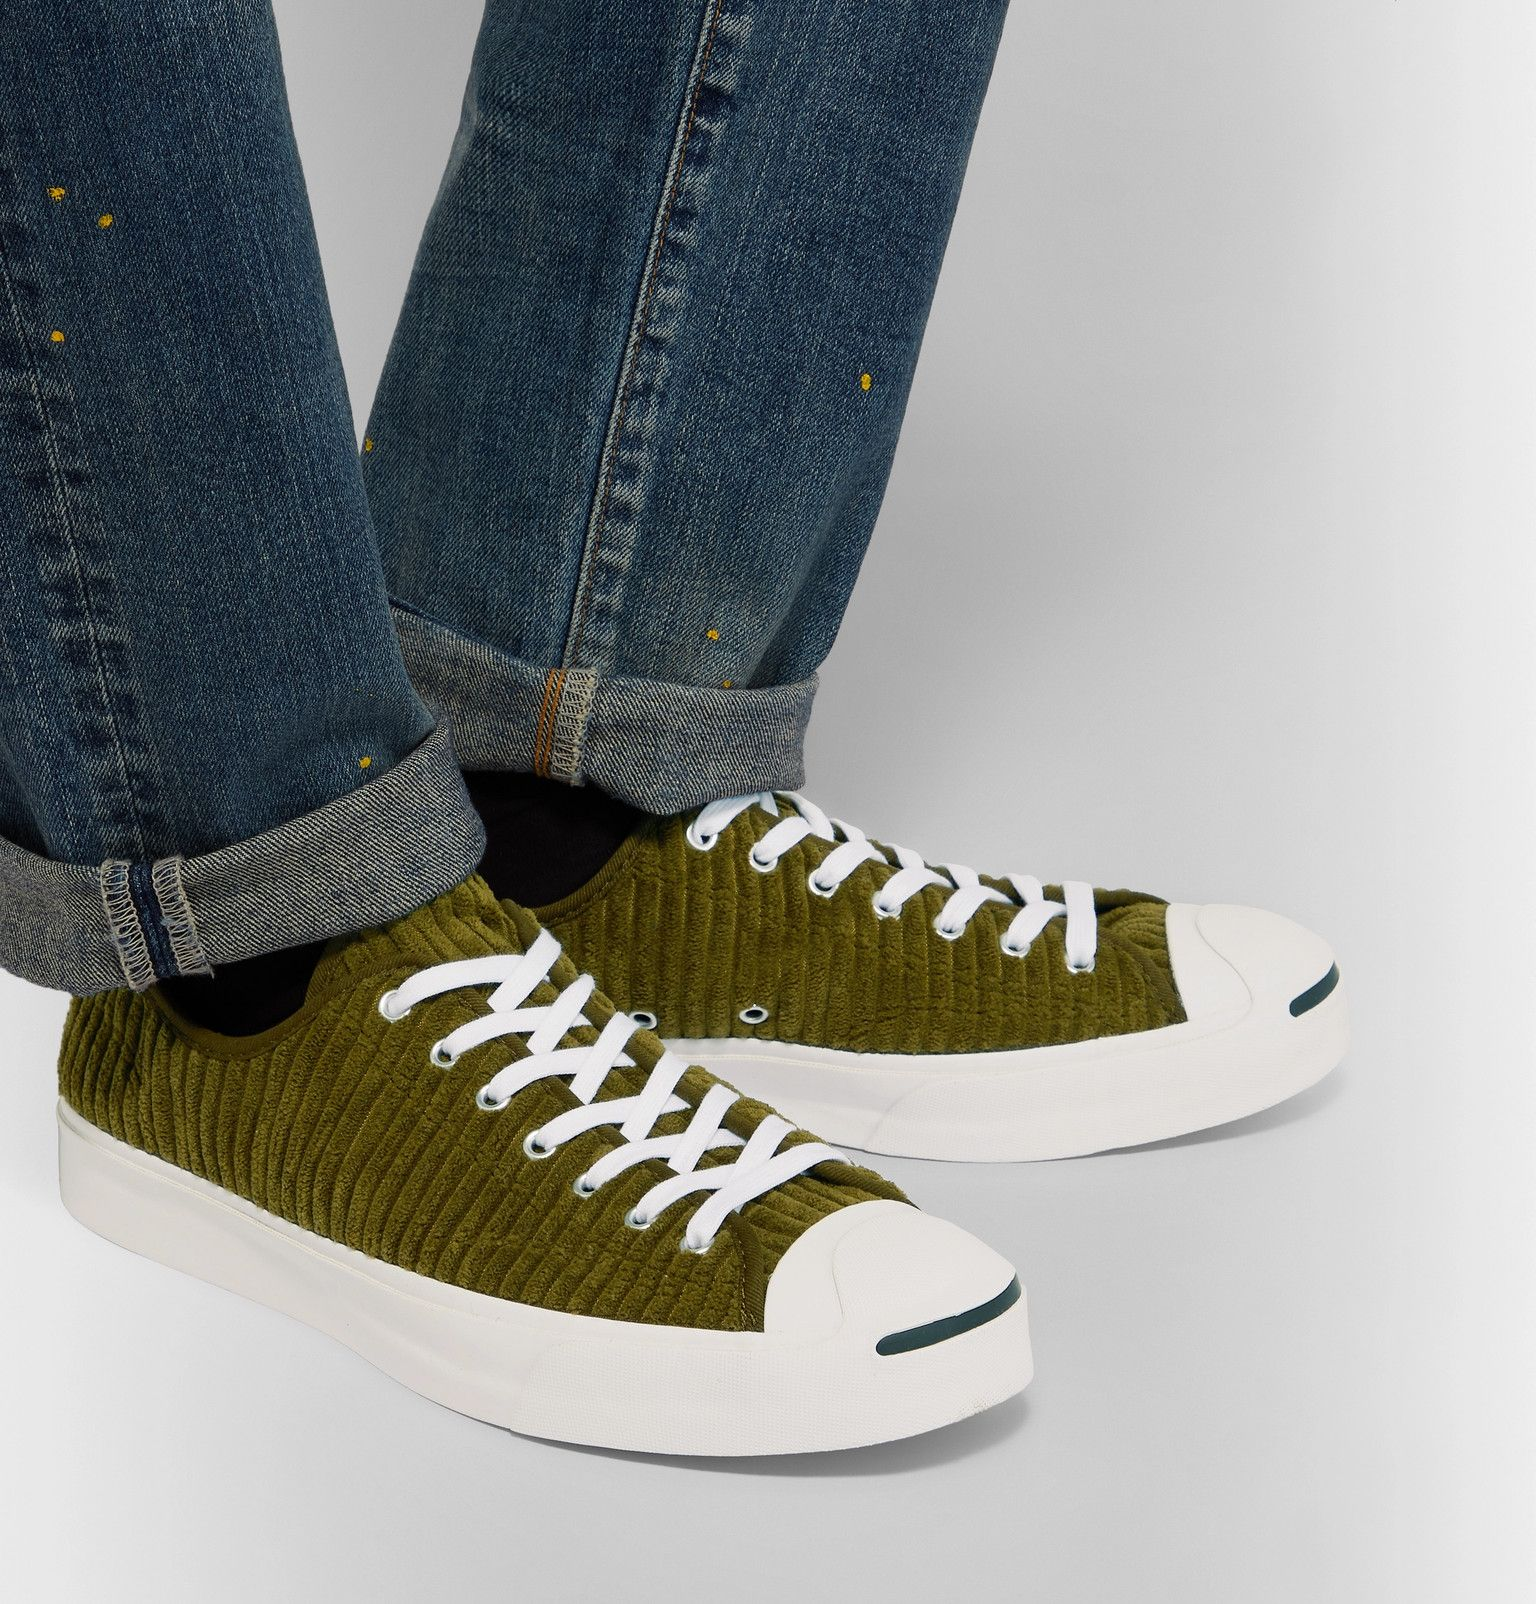 CONVERSE JACK PURCELL OX RUBBER. #converse #shoes